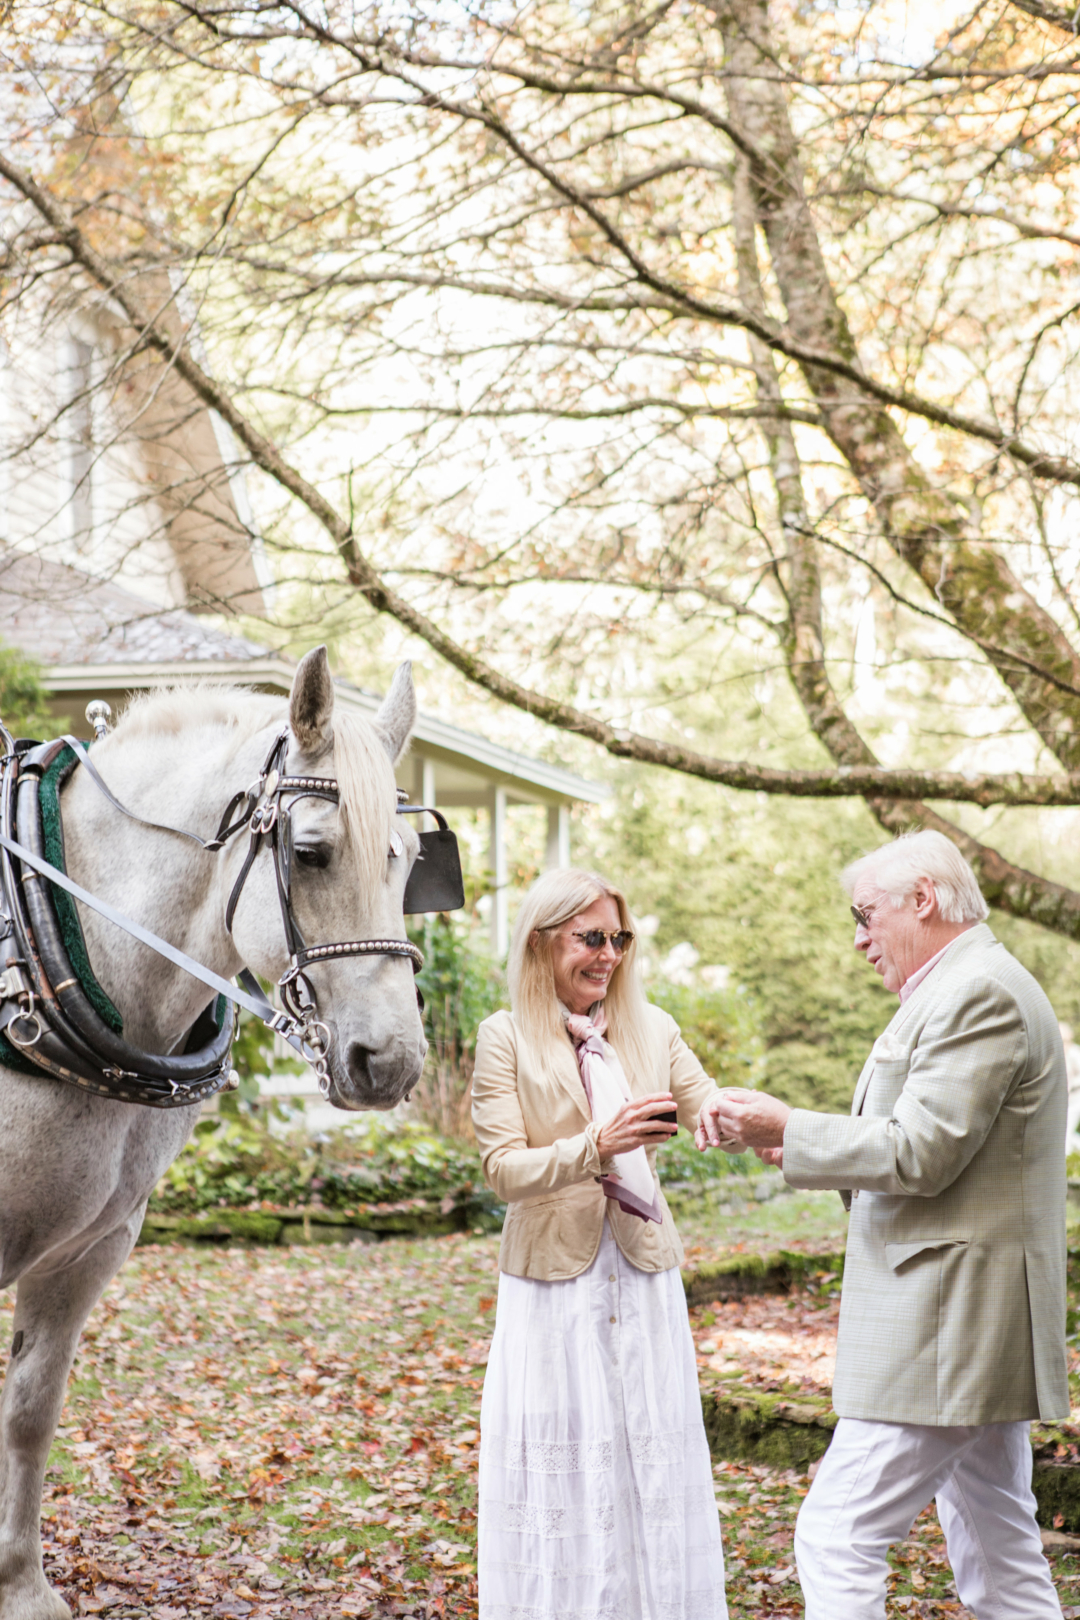 Travel: Palm Beach Lately Engagement at Old Edwards Inn and Spa in Highlands, NC